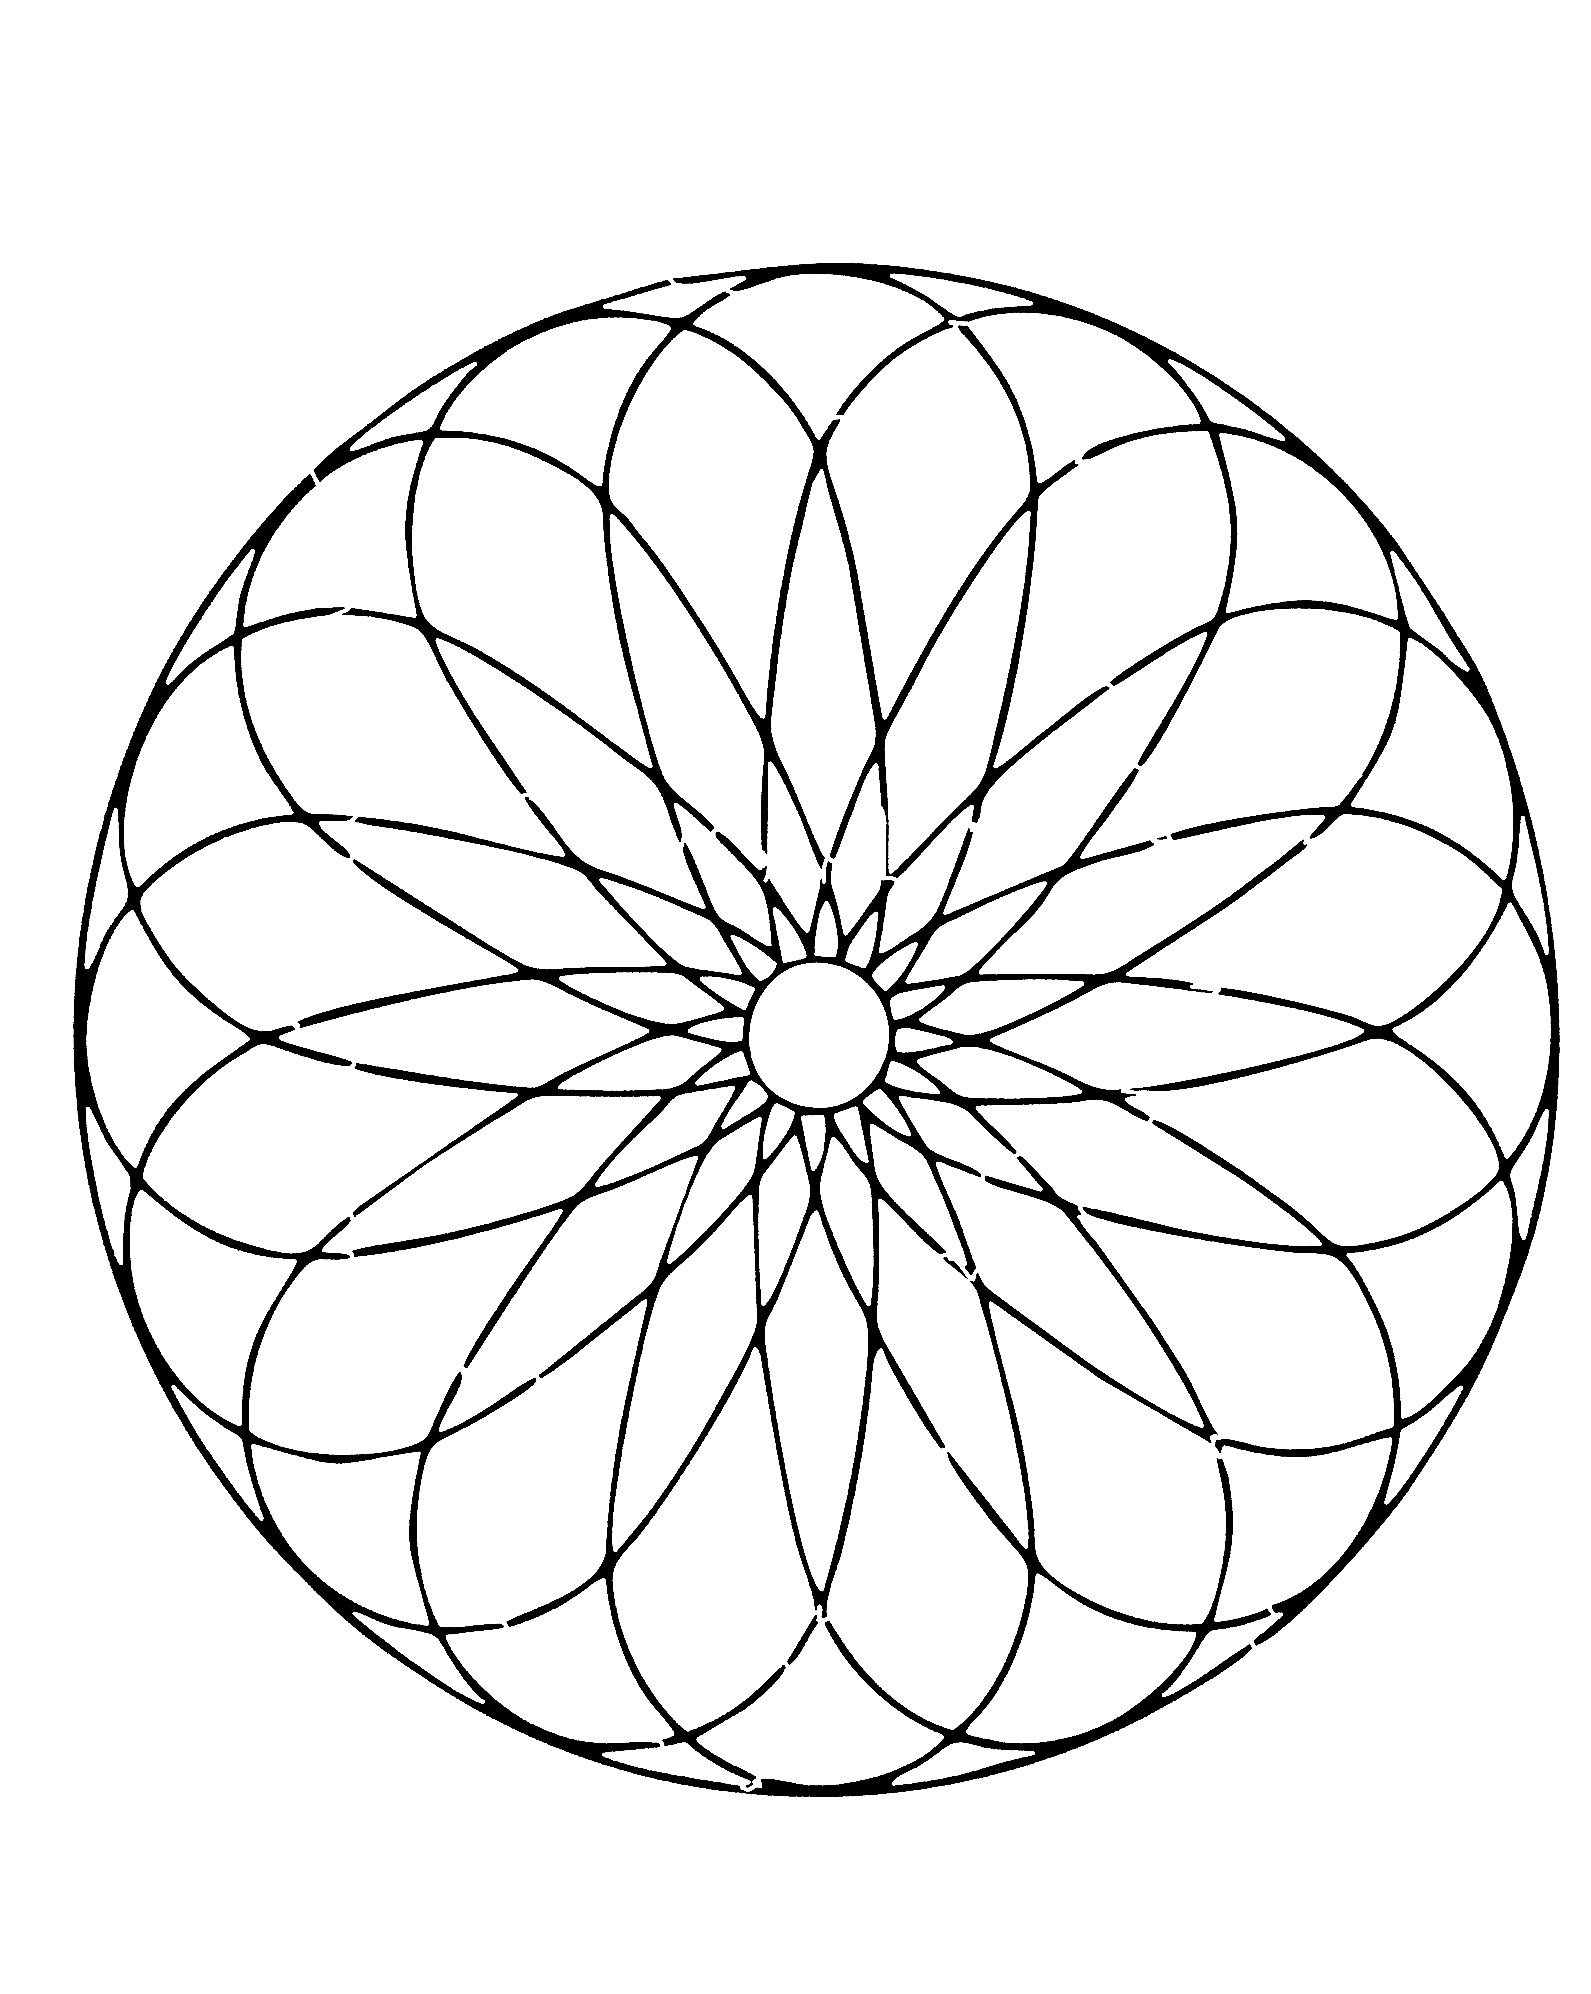 simple mandalas jennys middle page if you see this youre on the wrong simple mandalas